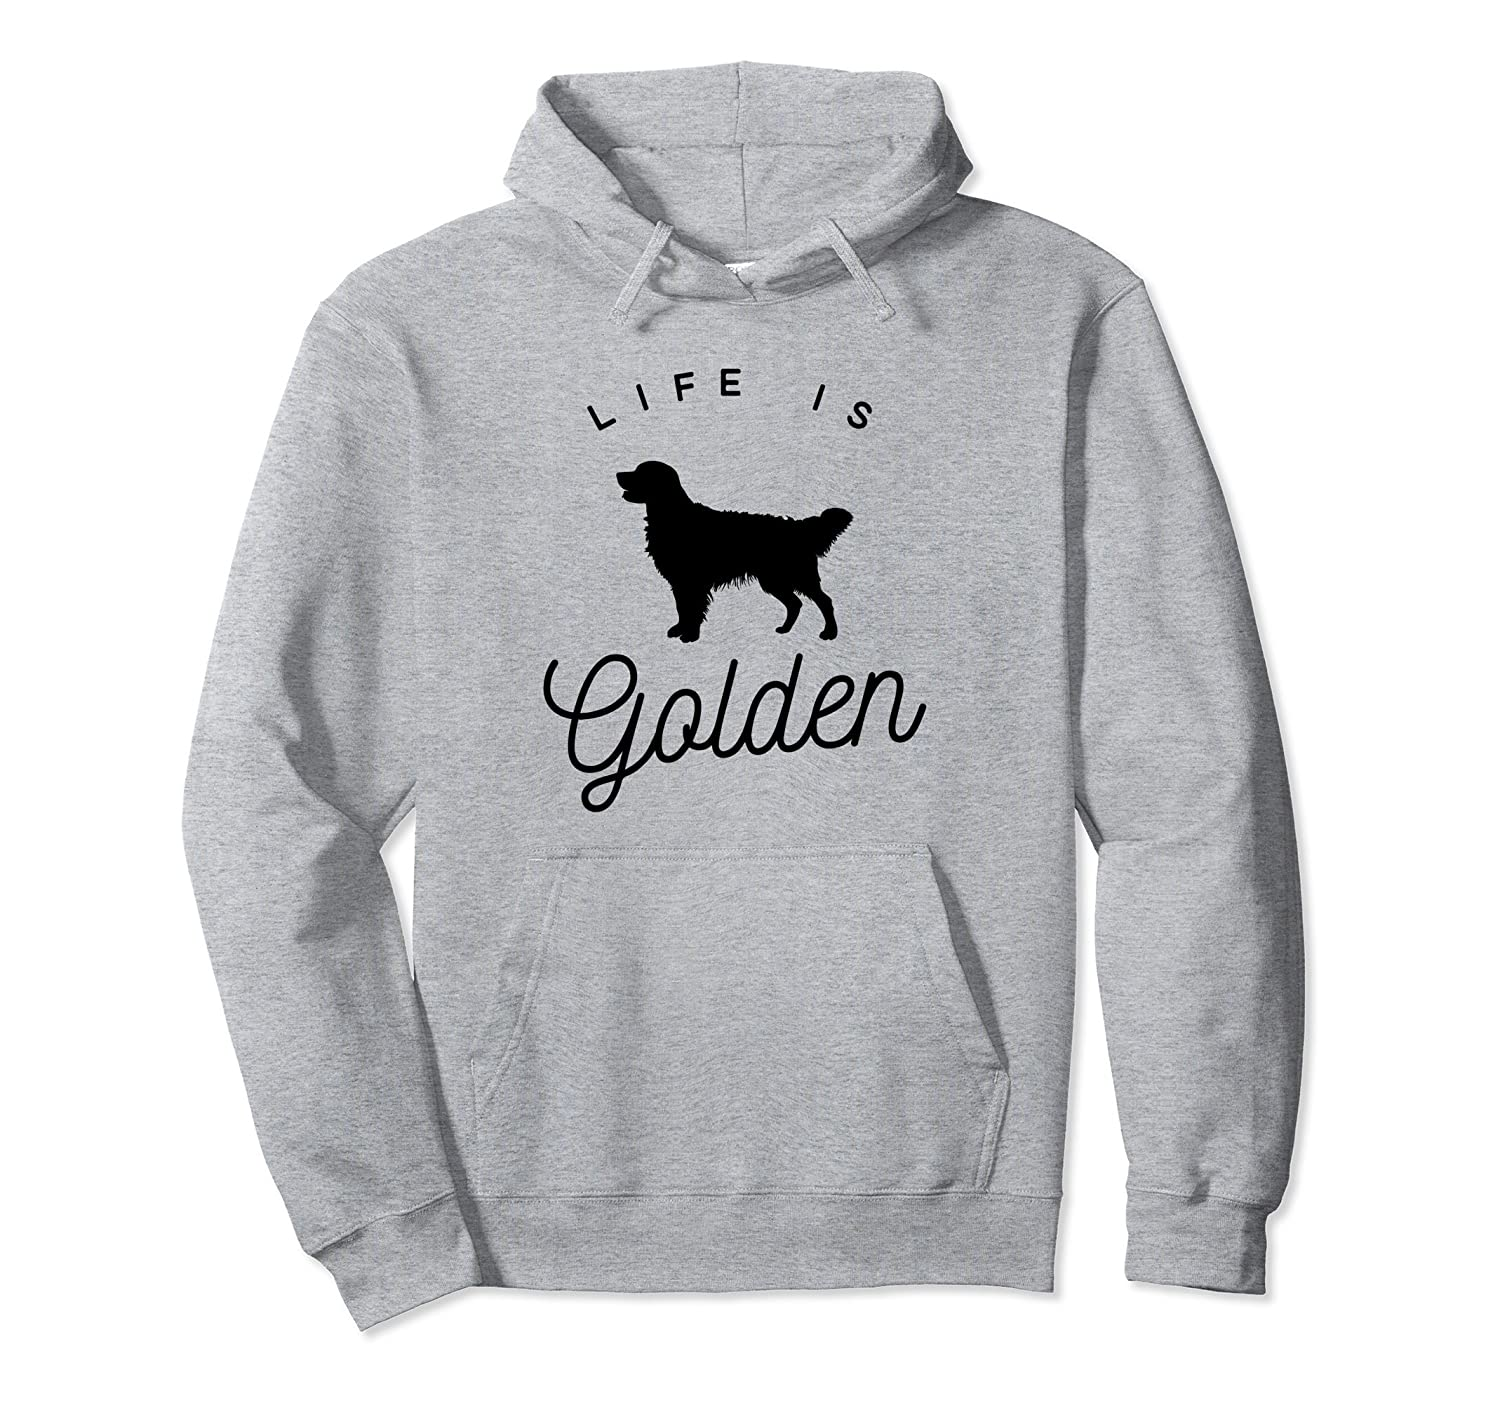 Life is Golden Pullover Hoodie for Golden Retriever lovers-mt